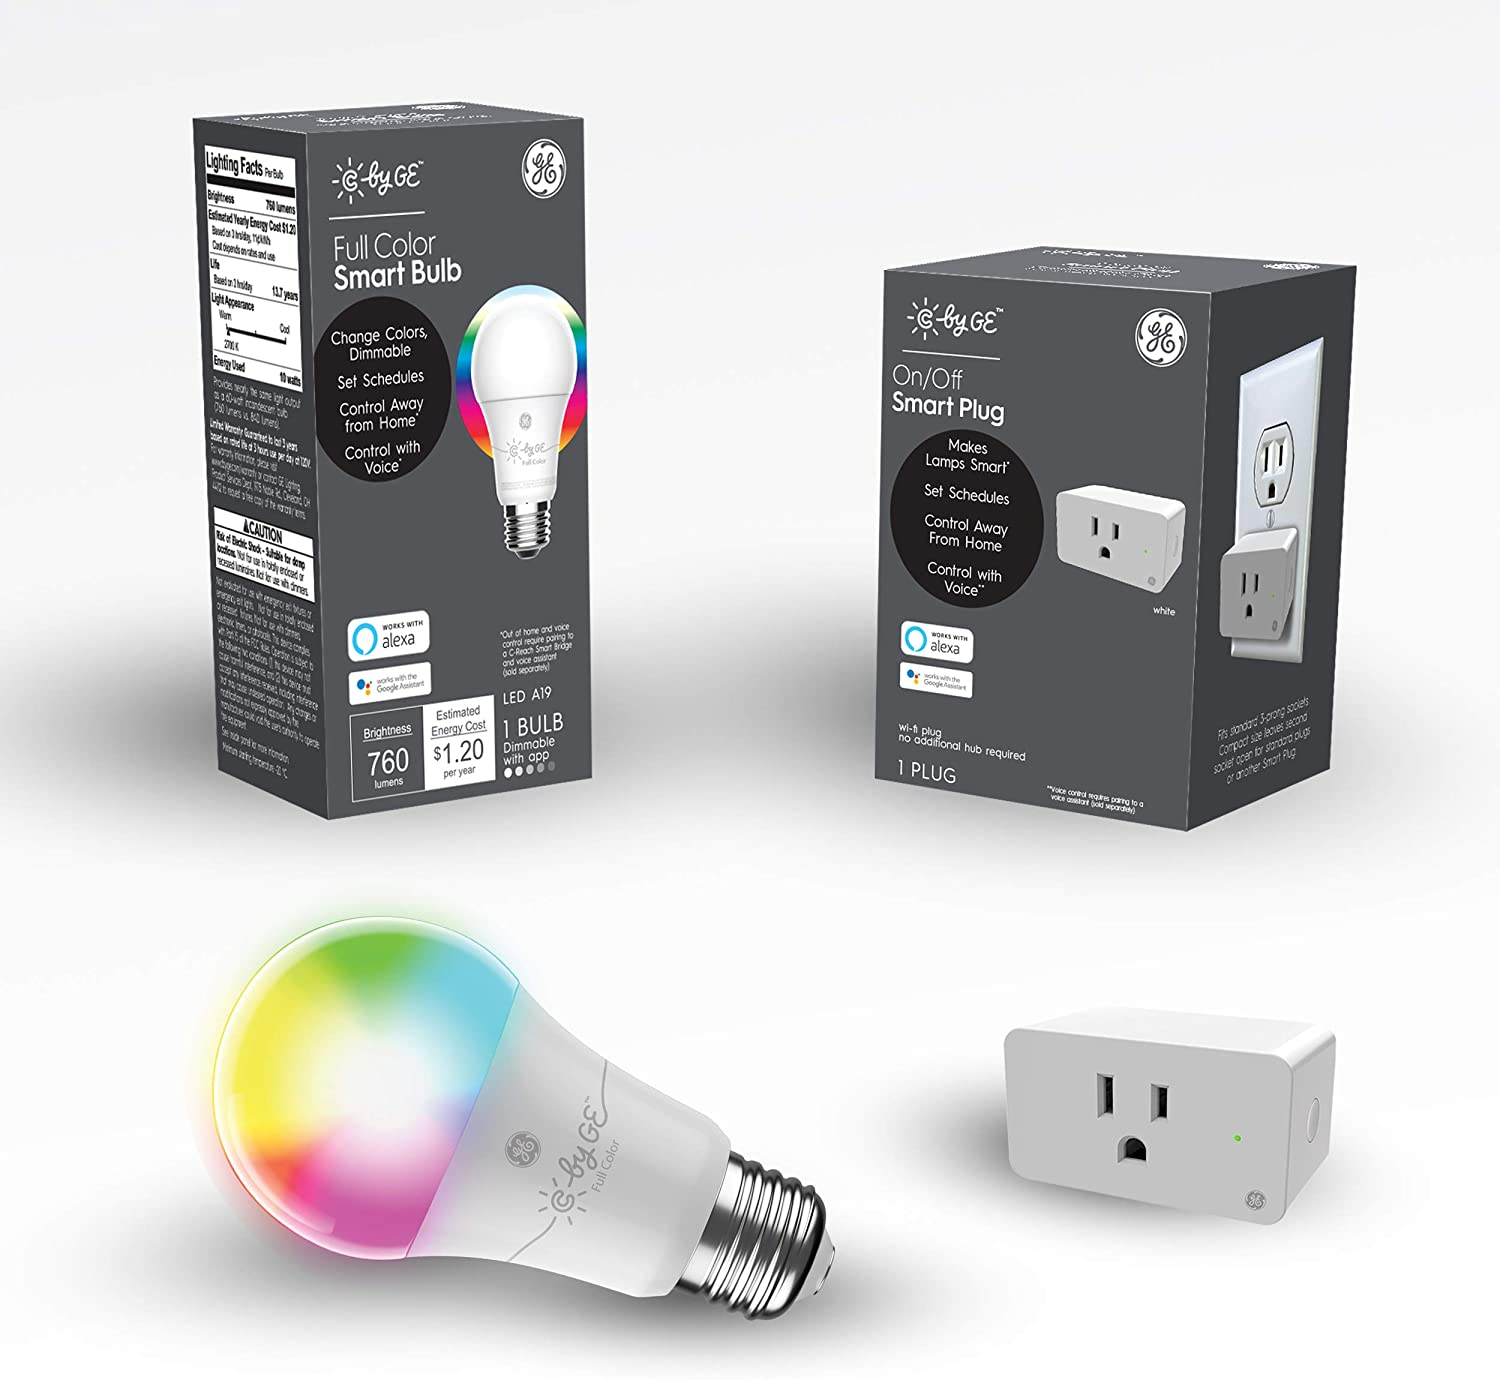 C by GE Smart Bundle Pack with 1 Smart Bulb and Smart Plug (1 LED A19 Full Color Bulbs + On/Off Smart Plug), Works with Alexa and Google Assistant, WiFi Enabled